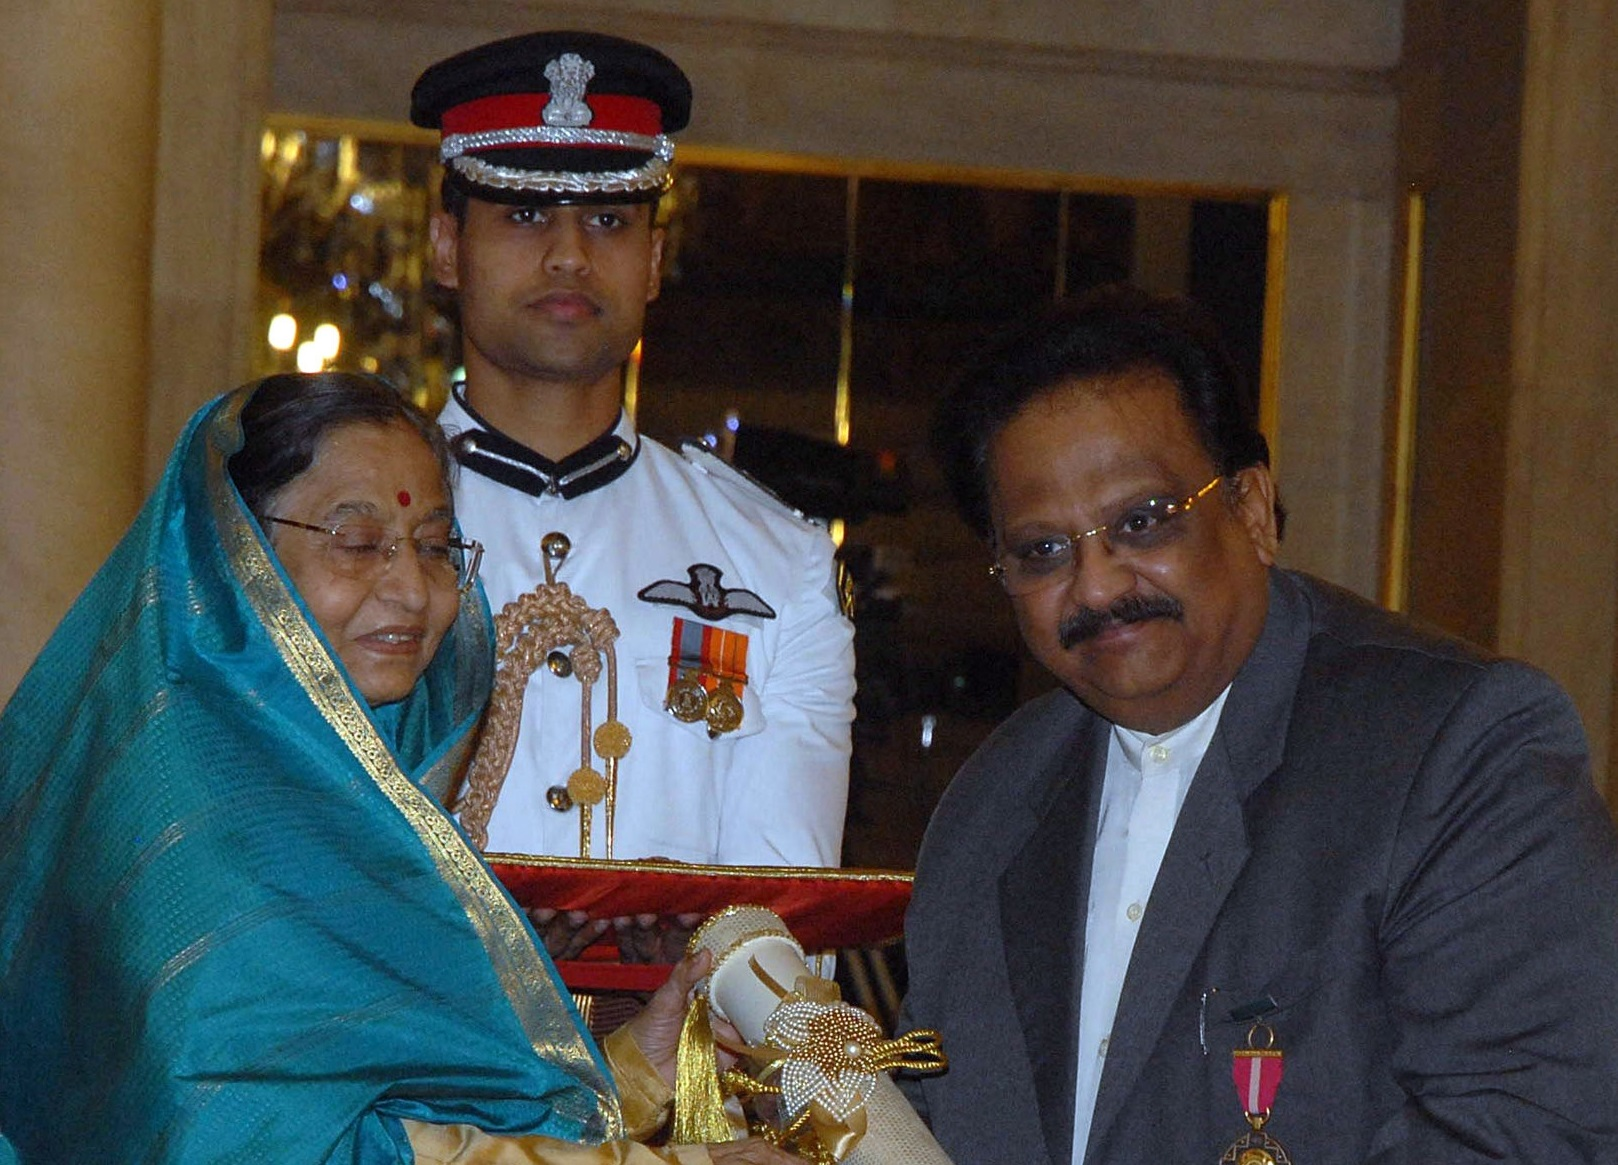 FILE PHOTO: Indian President Pradibha Singh Patil (L) presents Indian singer, S P Balasubrahmanyam during the presentation of the 'Padma Awards 2011' at The Presidential House in New Delhi on March 24, 2011.  (STRDEL/AFP via Getty Images)